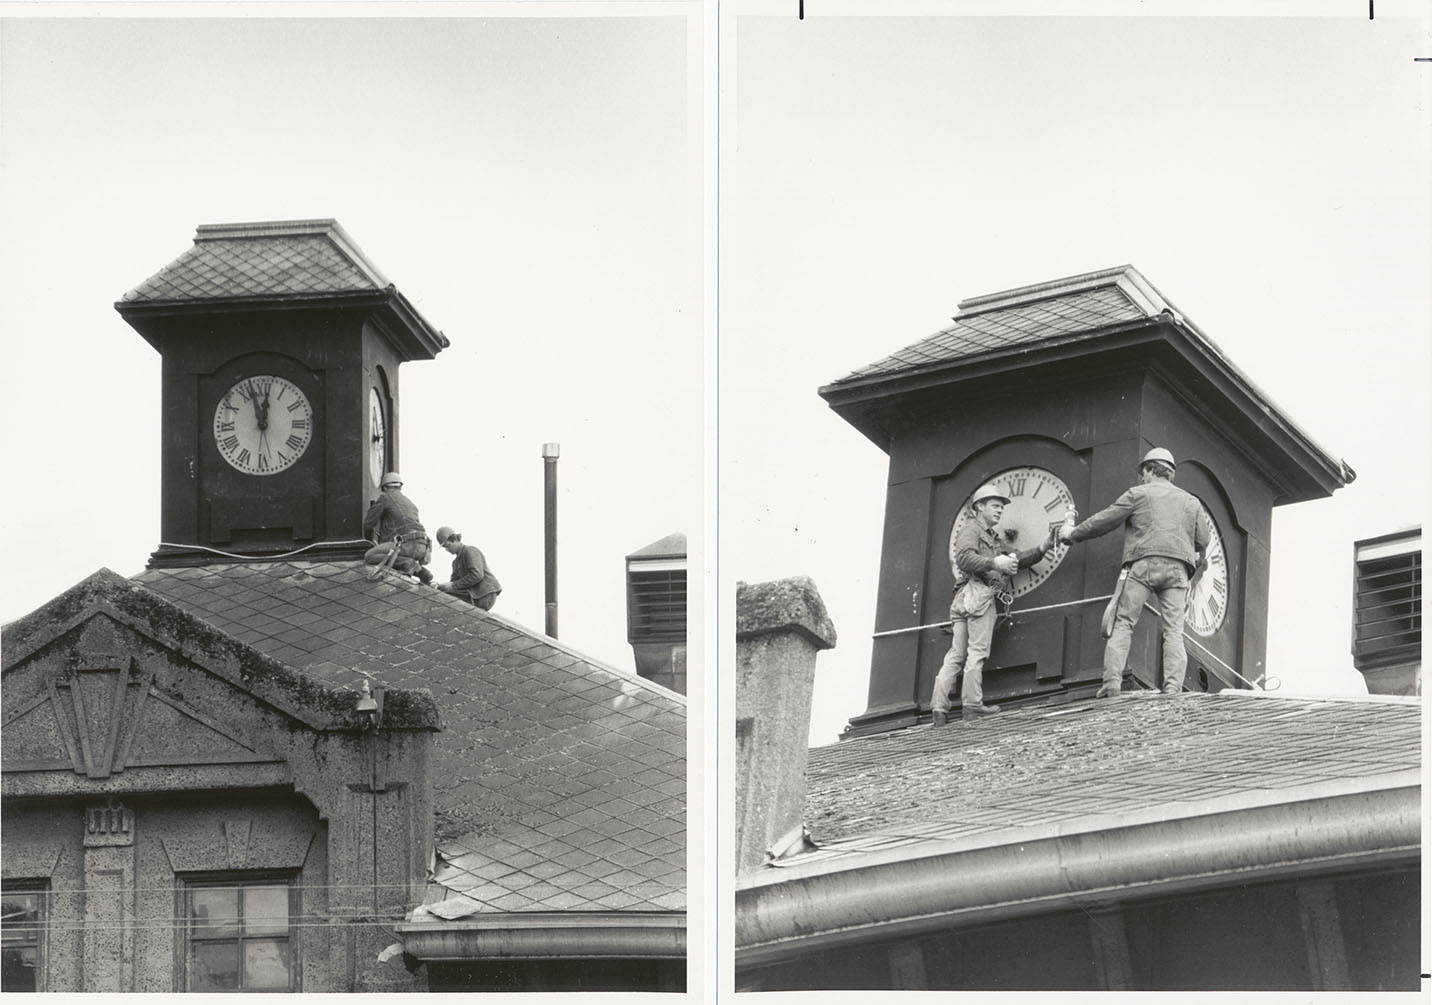 Removal of Clock 1988